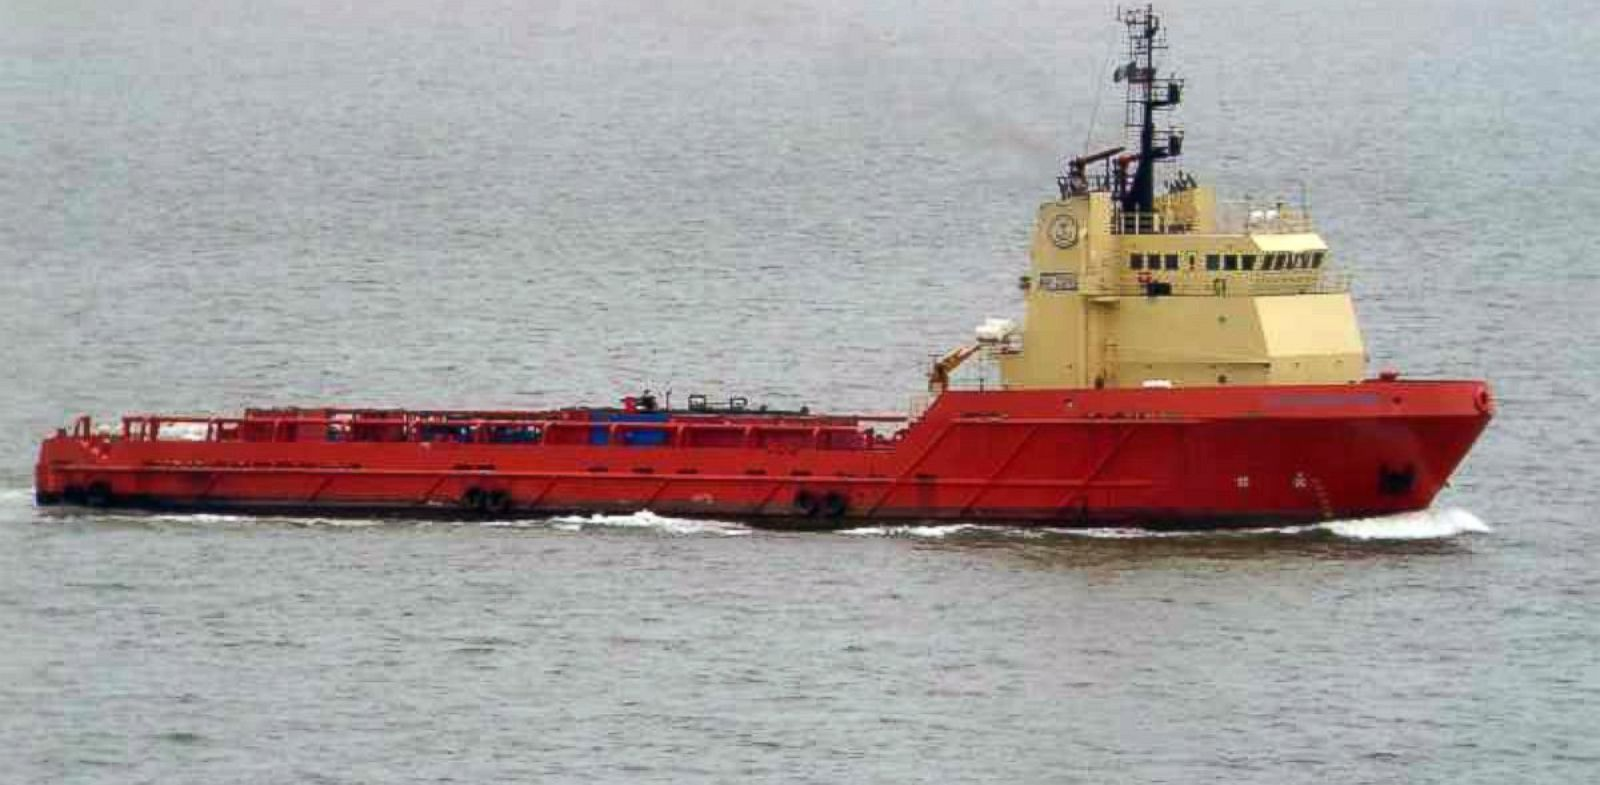 PHOTO: The C-Retriever is an oil supply vessel owned by U.S. marine transport group Edison Chouest Offshore.